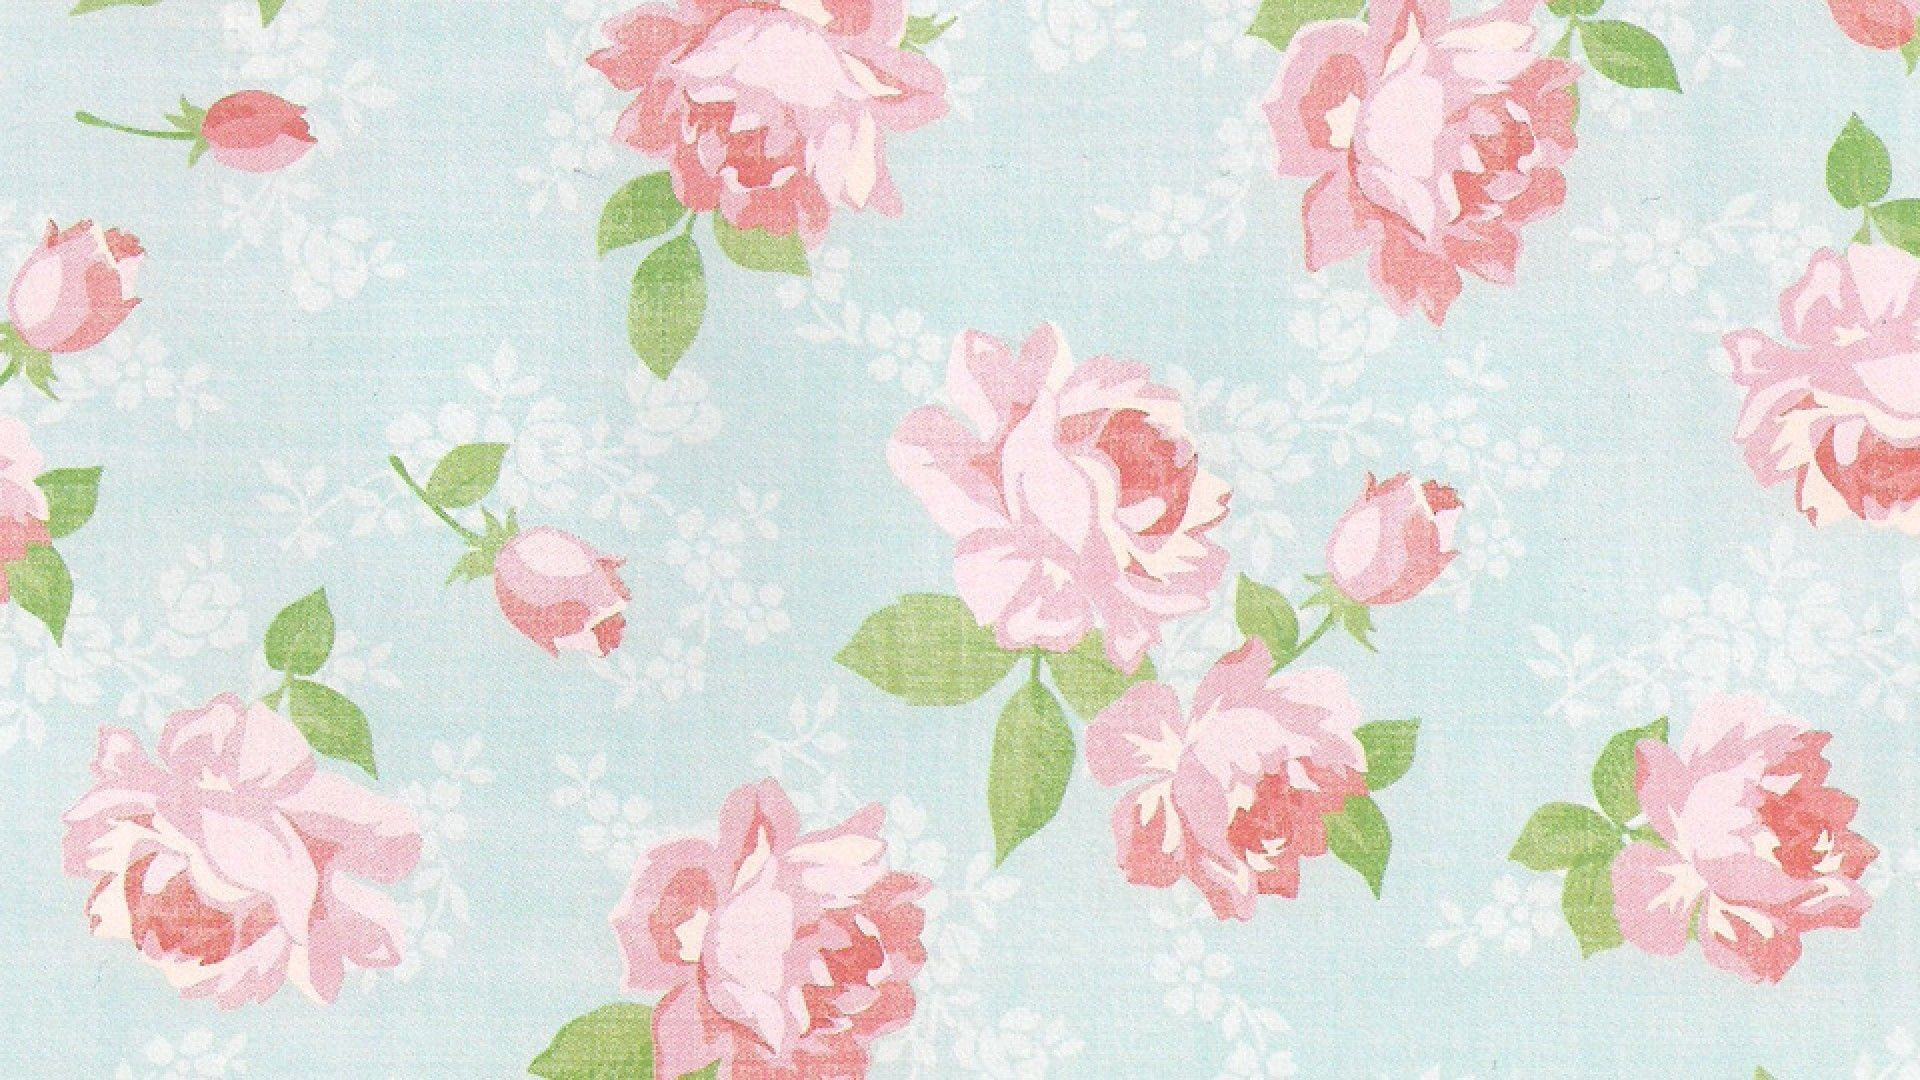 Floral Desktop Wallpaper 64 Pictures